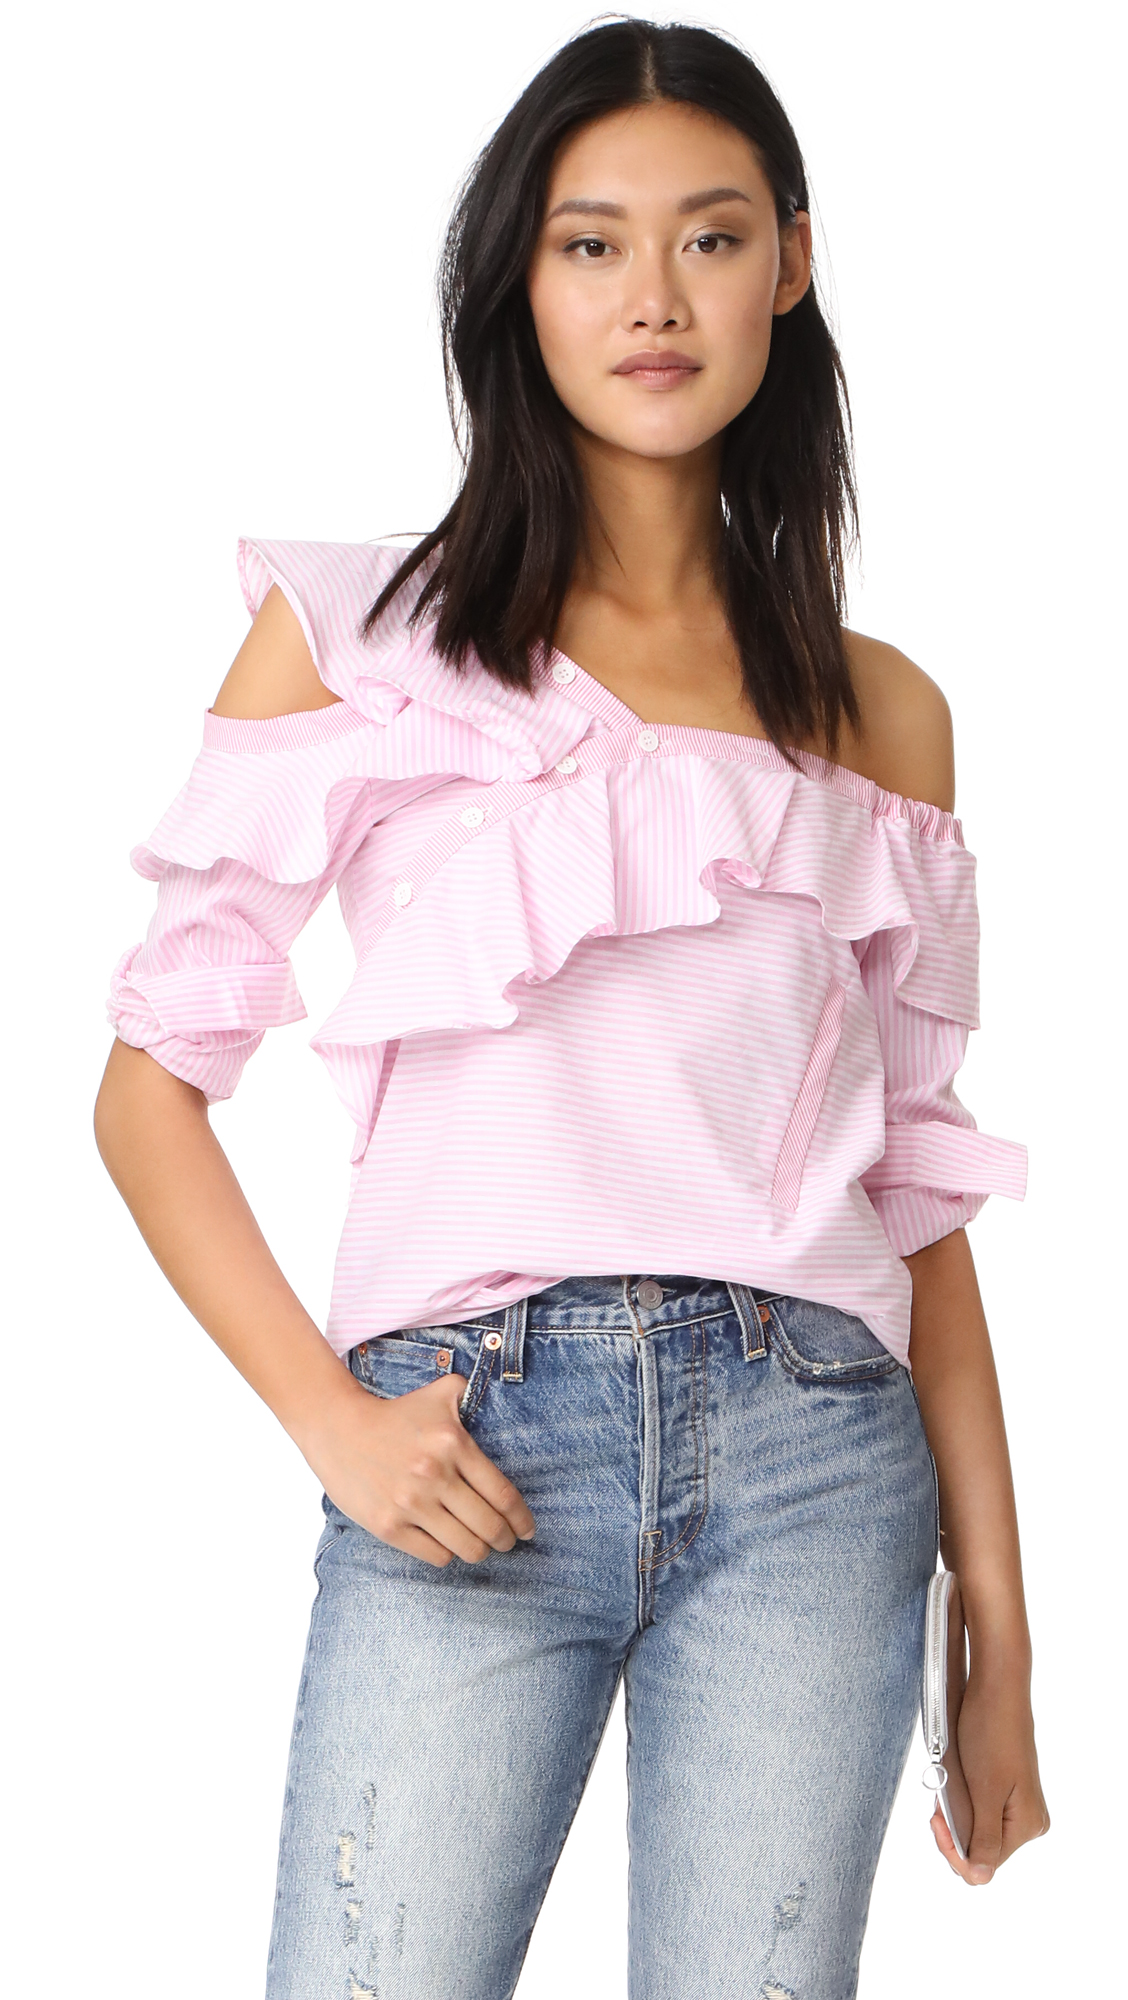 STYLEKEEPERS Look of Love Top - Pink